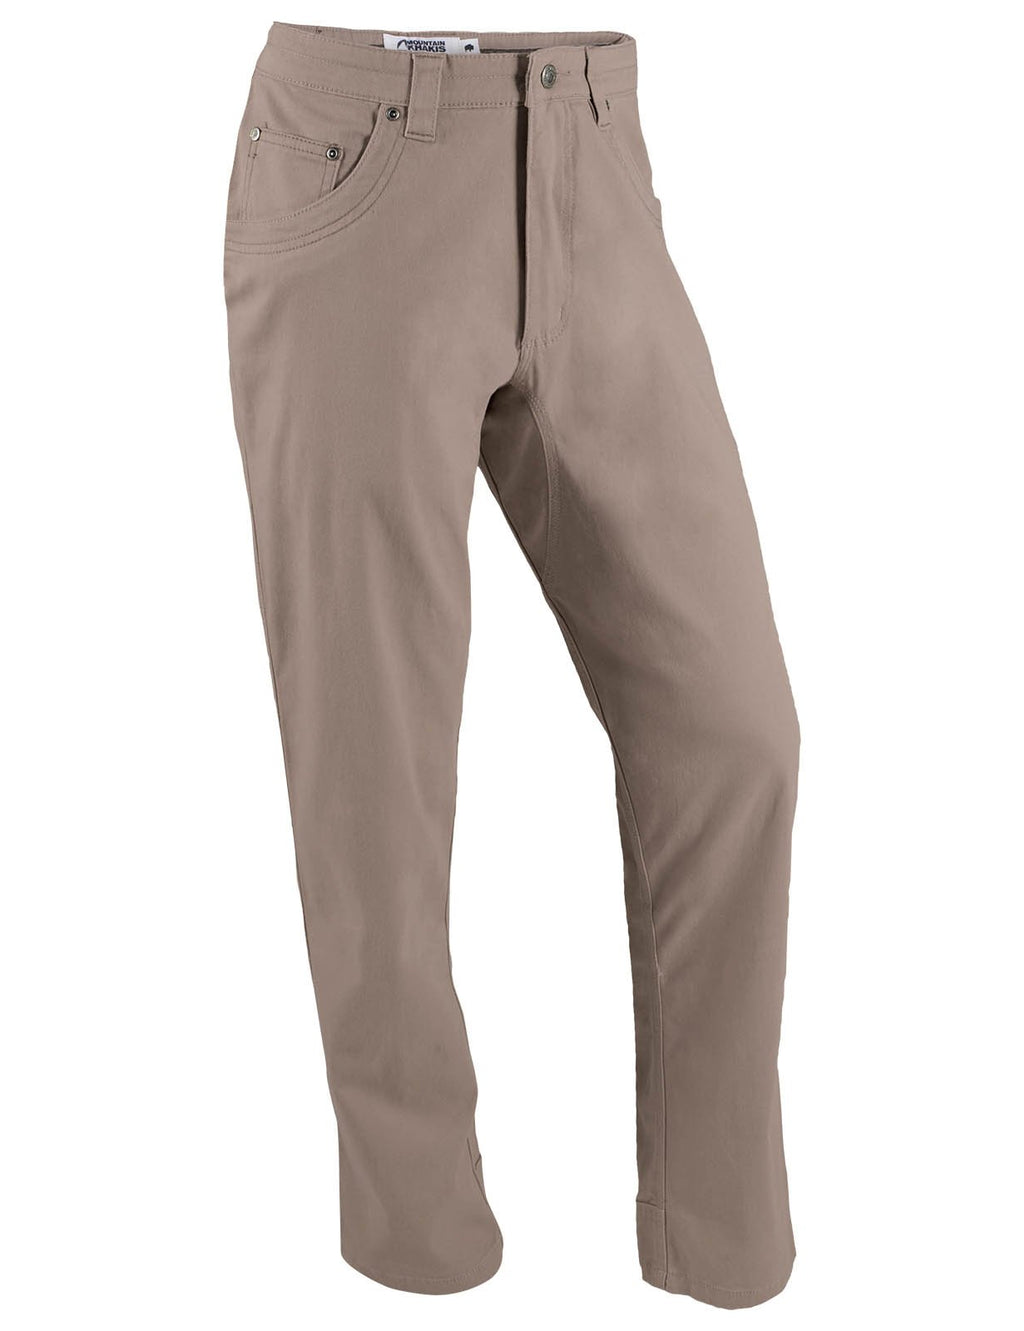 "Men's Camber 103 Pant | Mountain Khakis | A streamlined version of our Camber 105 pant. Triple-stitched seams, ""mudflap"" reinforced heel cuffs, reinforced pocket bags, and angled back pocket ideal for gloves. This outdoor pant is ideal for hiking, climbing, camping, and days in the field."